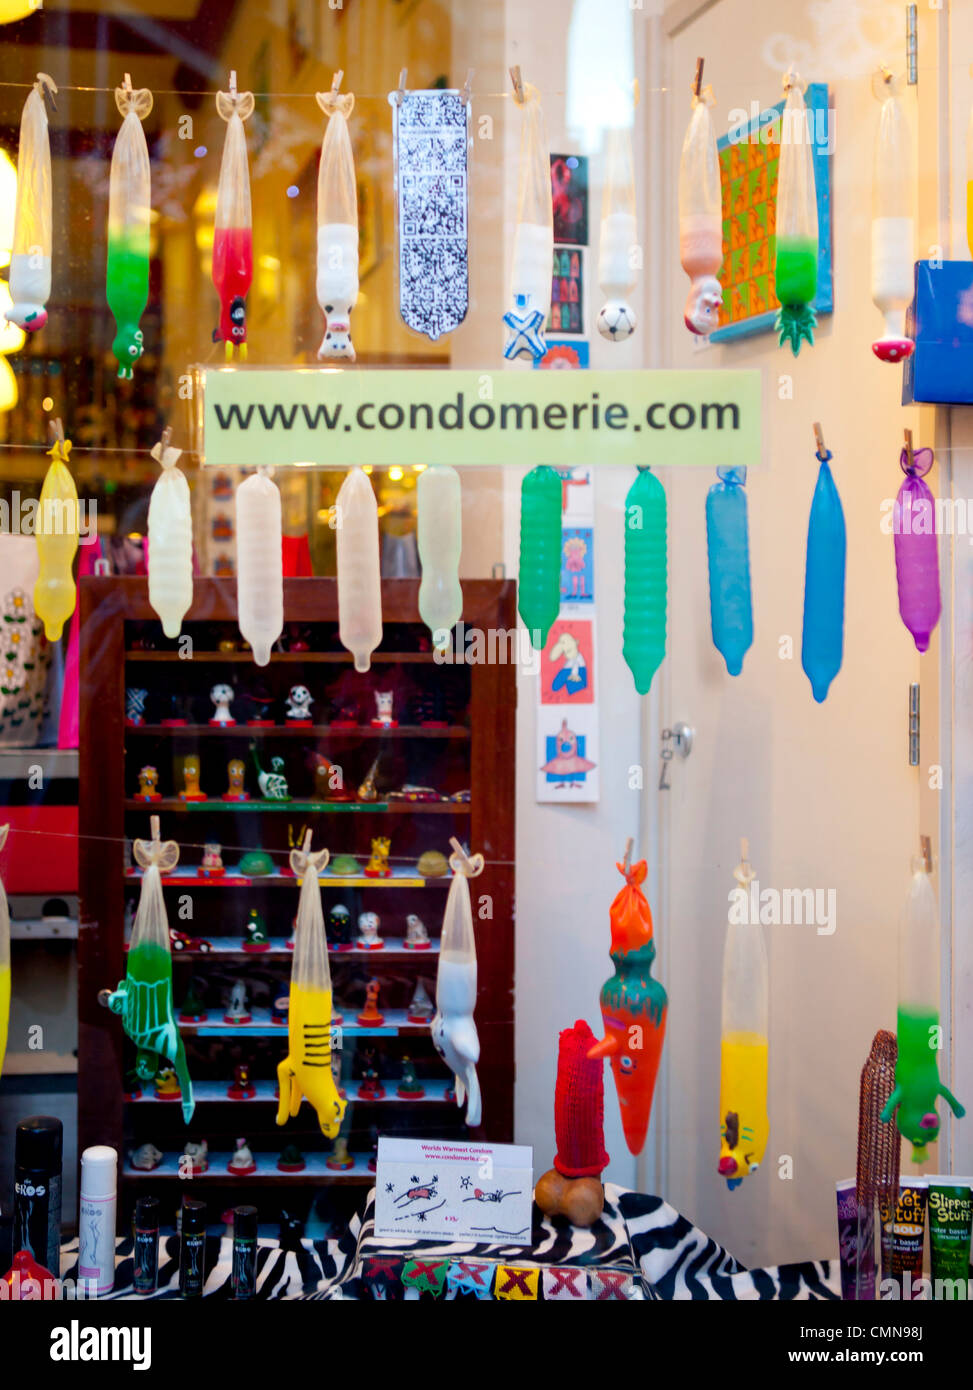 condom shop window, Amsterdam - Stock Image